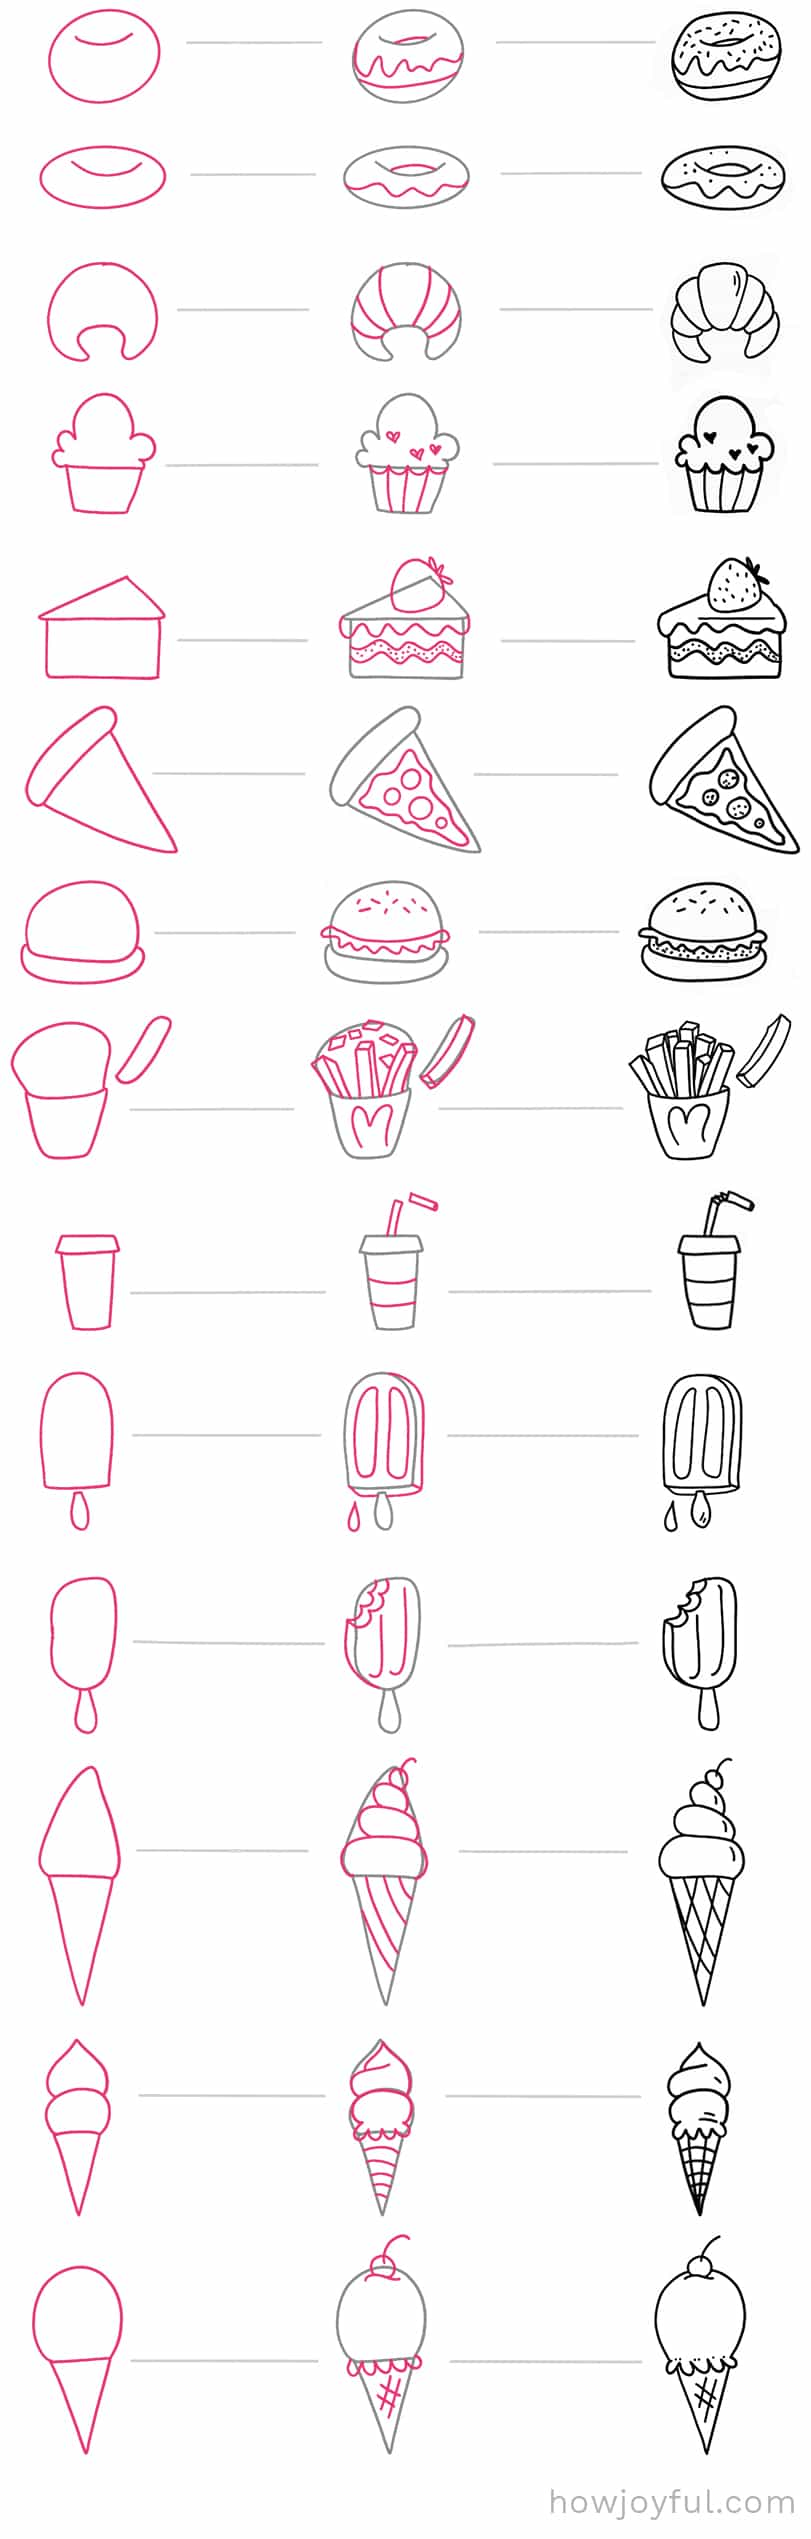 easy food things to draw